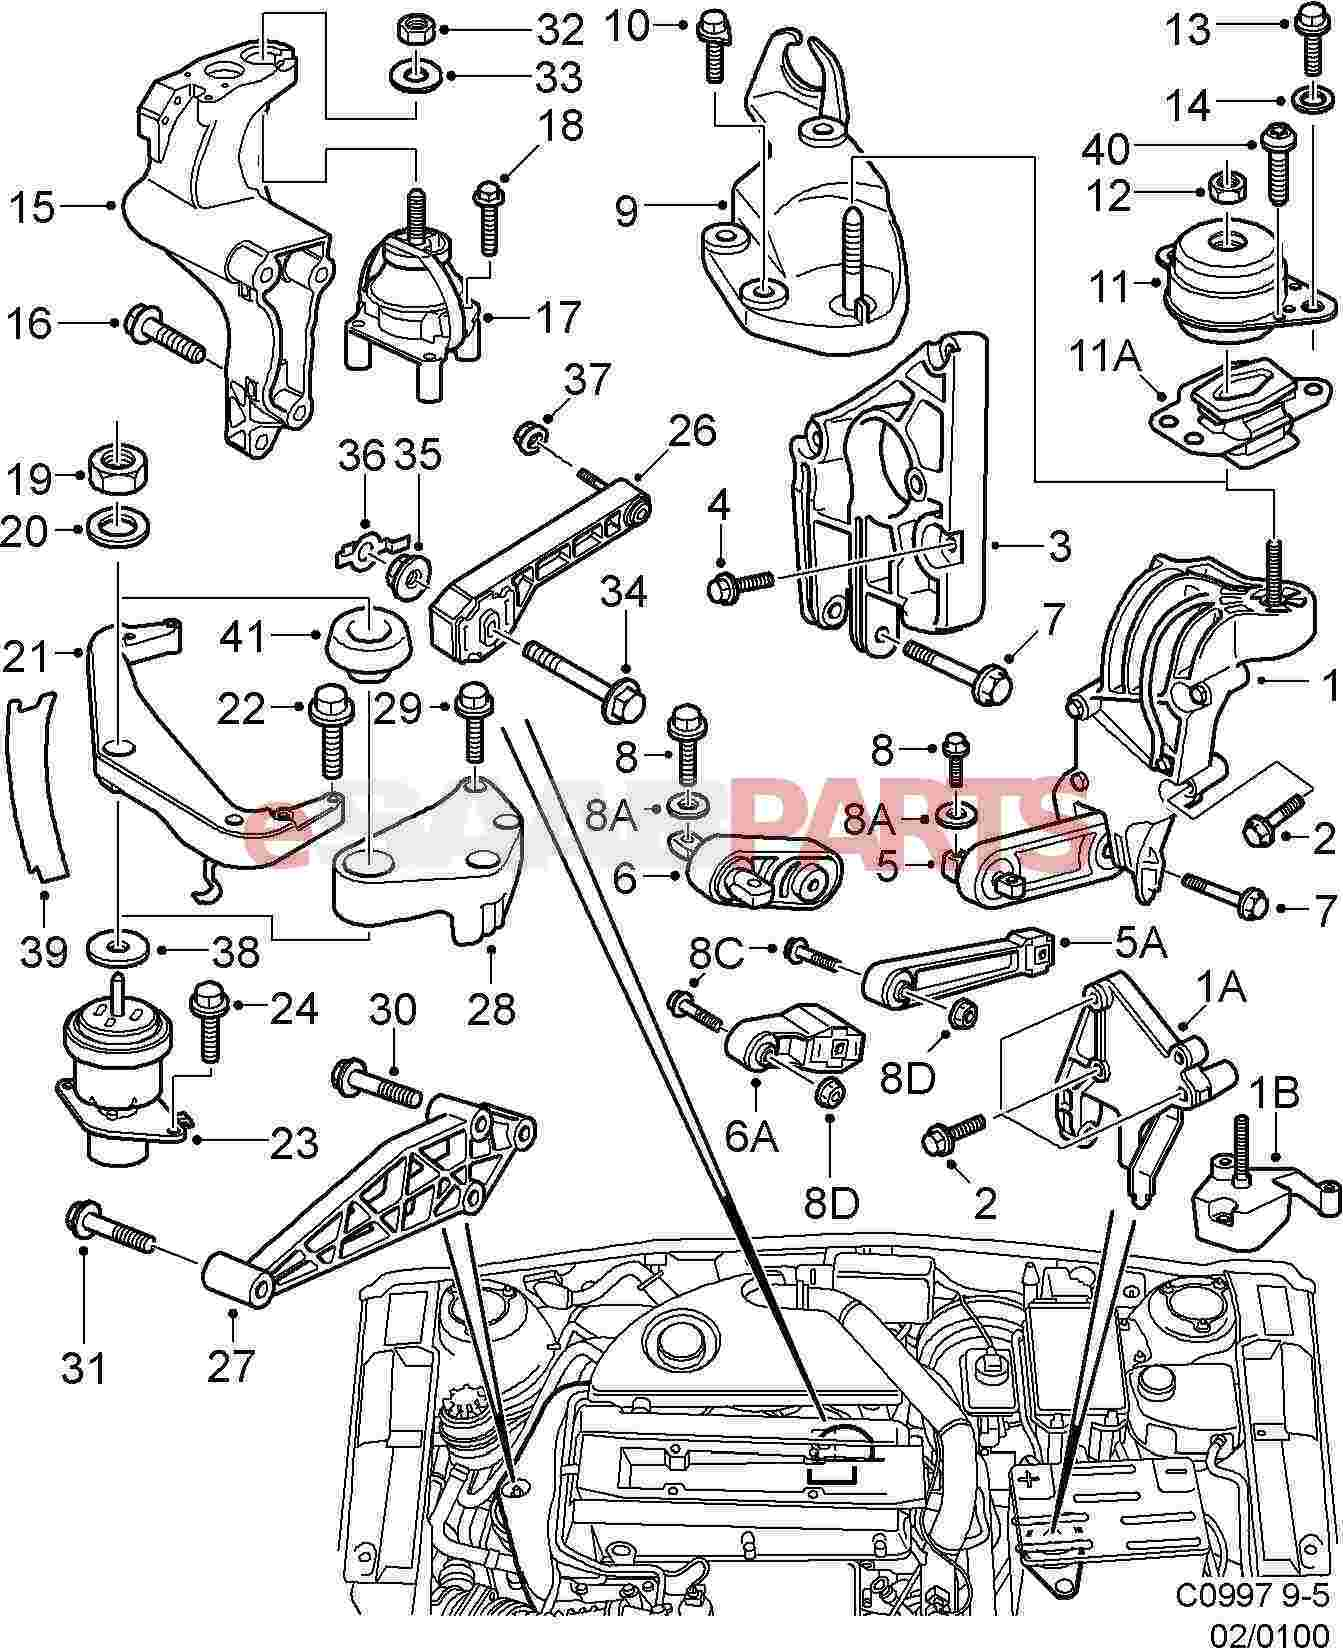 hight resolution of 1999 saab engine diagram wiring diagram todays rh 14 15 9 1813weddingbarn com saab 9000 cs turbo saab 9000 cs turbo